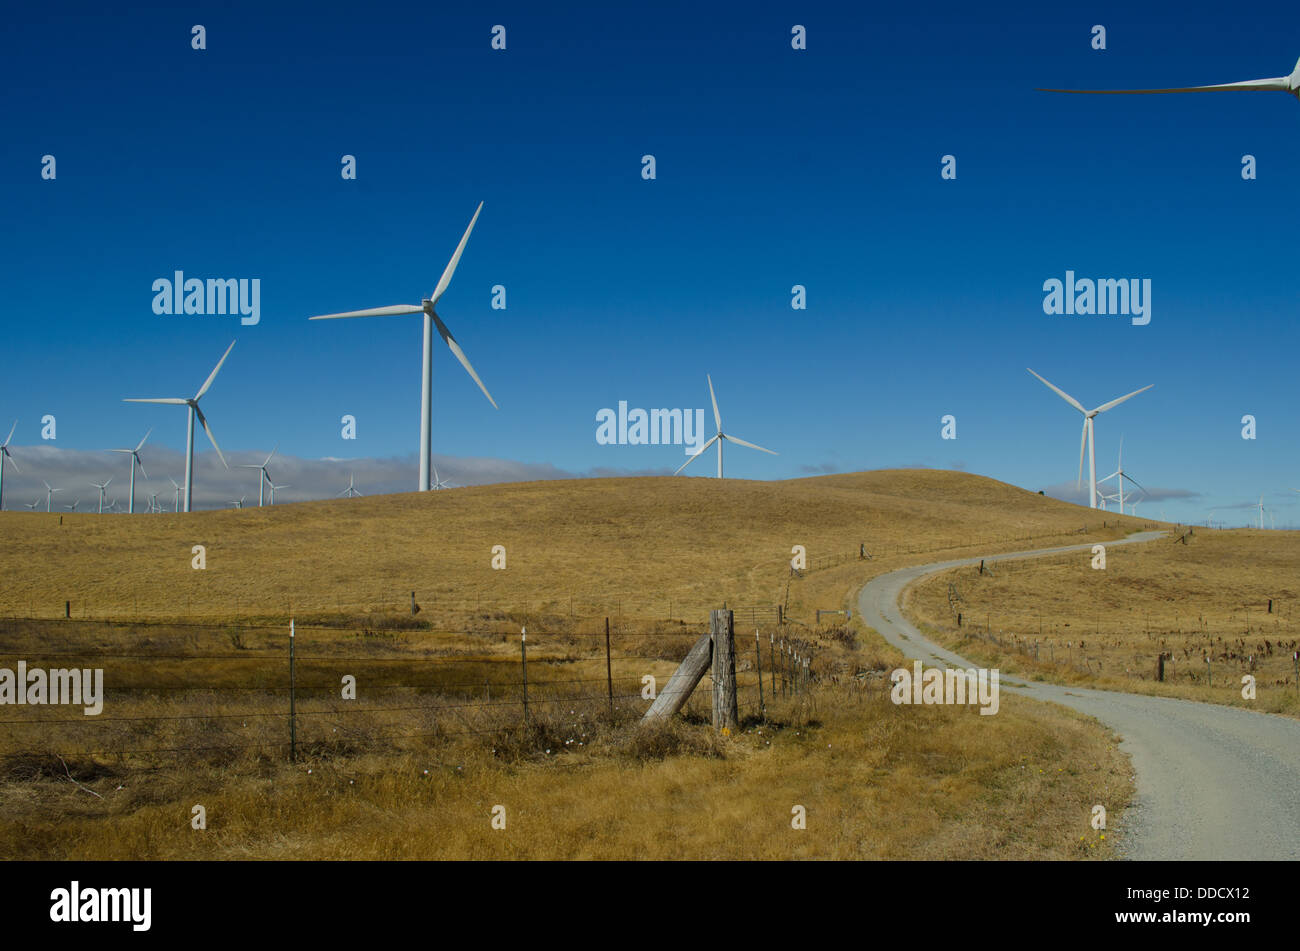 SMUD wind farm in the Montezuma Hills near Rio Vista California.  Each tower is 415 ft tall and generates 3 MW. - Stock Image